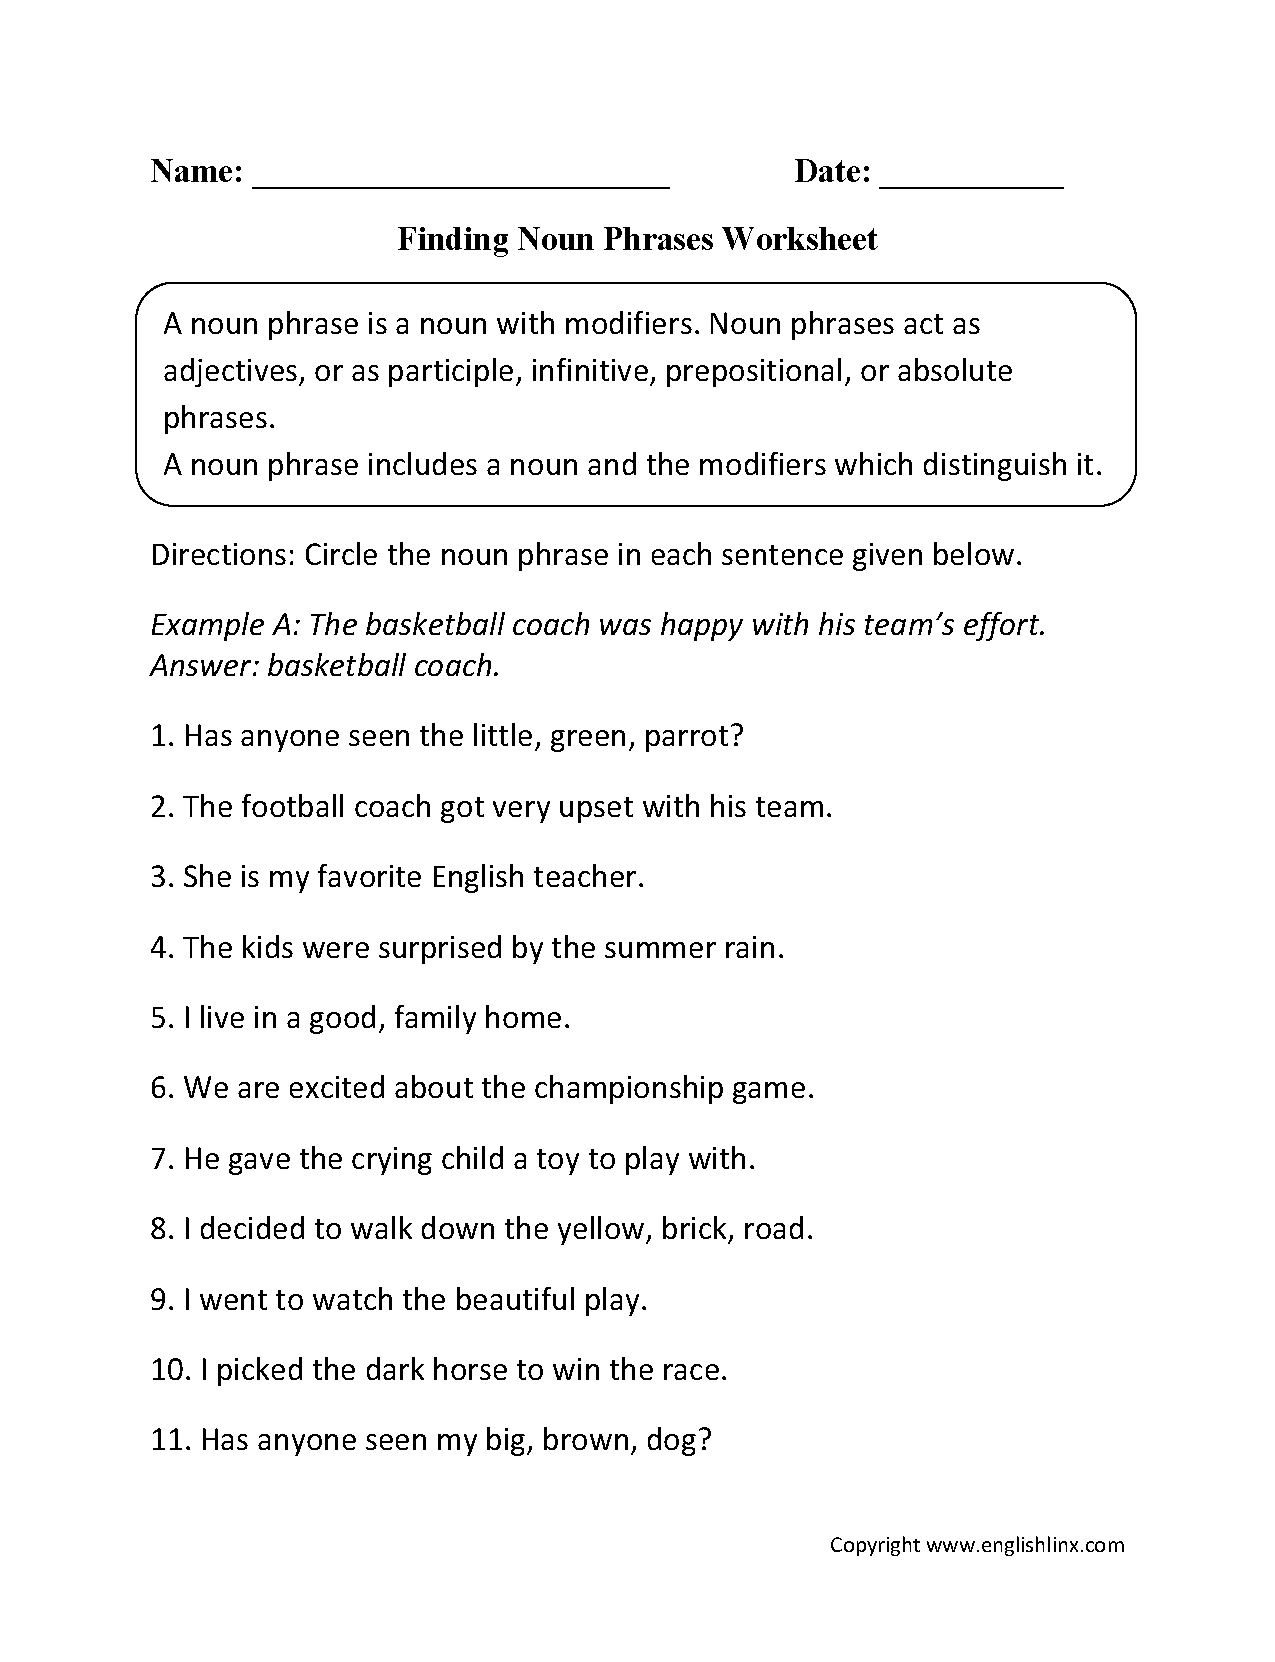 worksheet Noun Worksheets 4th Grade englishlinx com nouns worksheets noun phrases worksheets